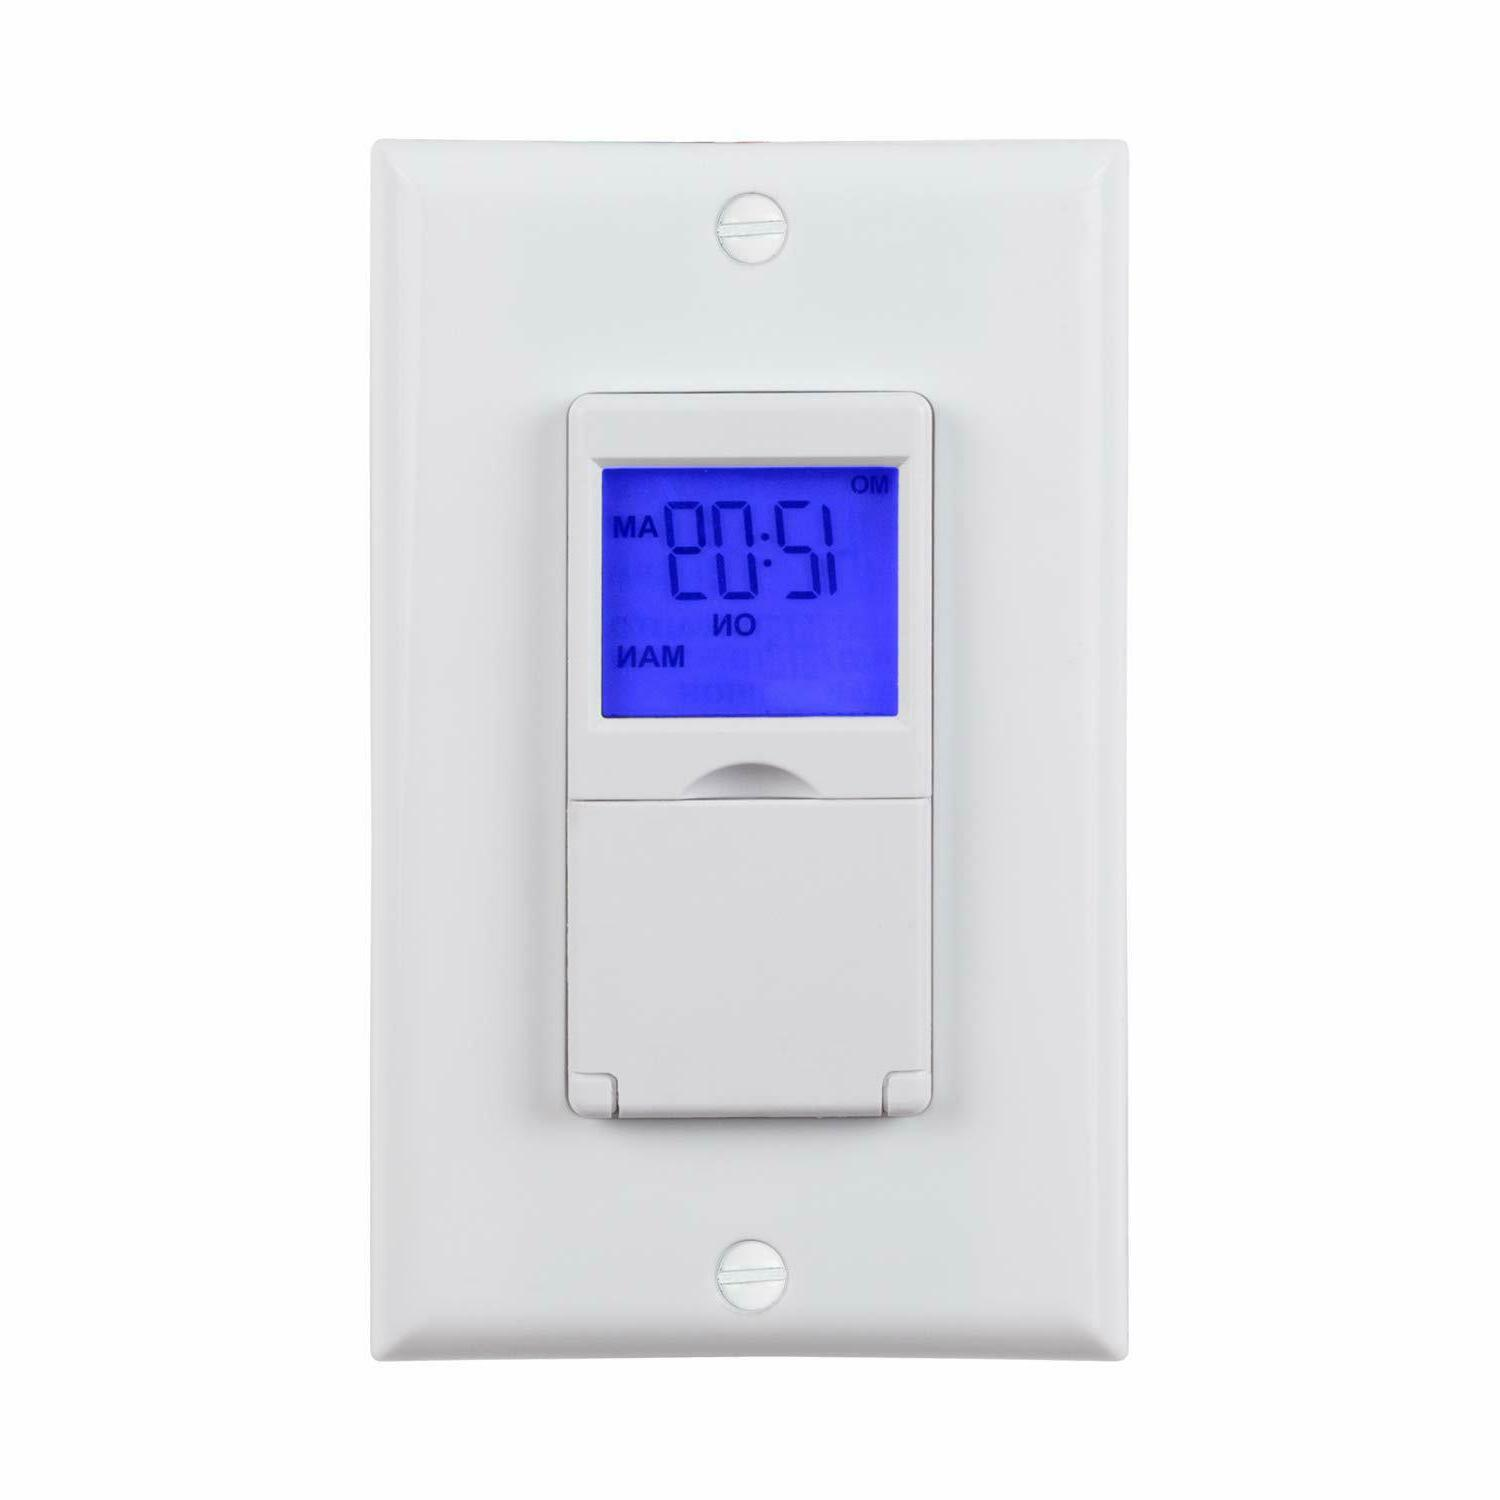 BN-LINK 7 Day Programmable Timer Switch, Single or 3 Way, bl